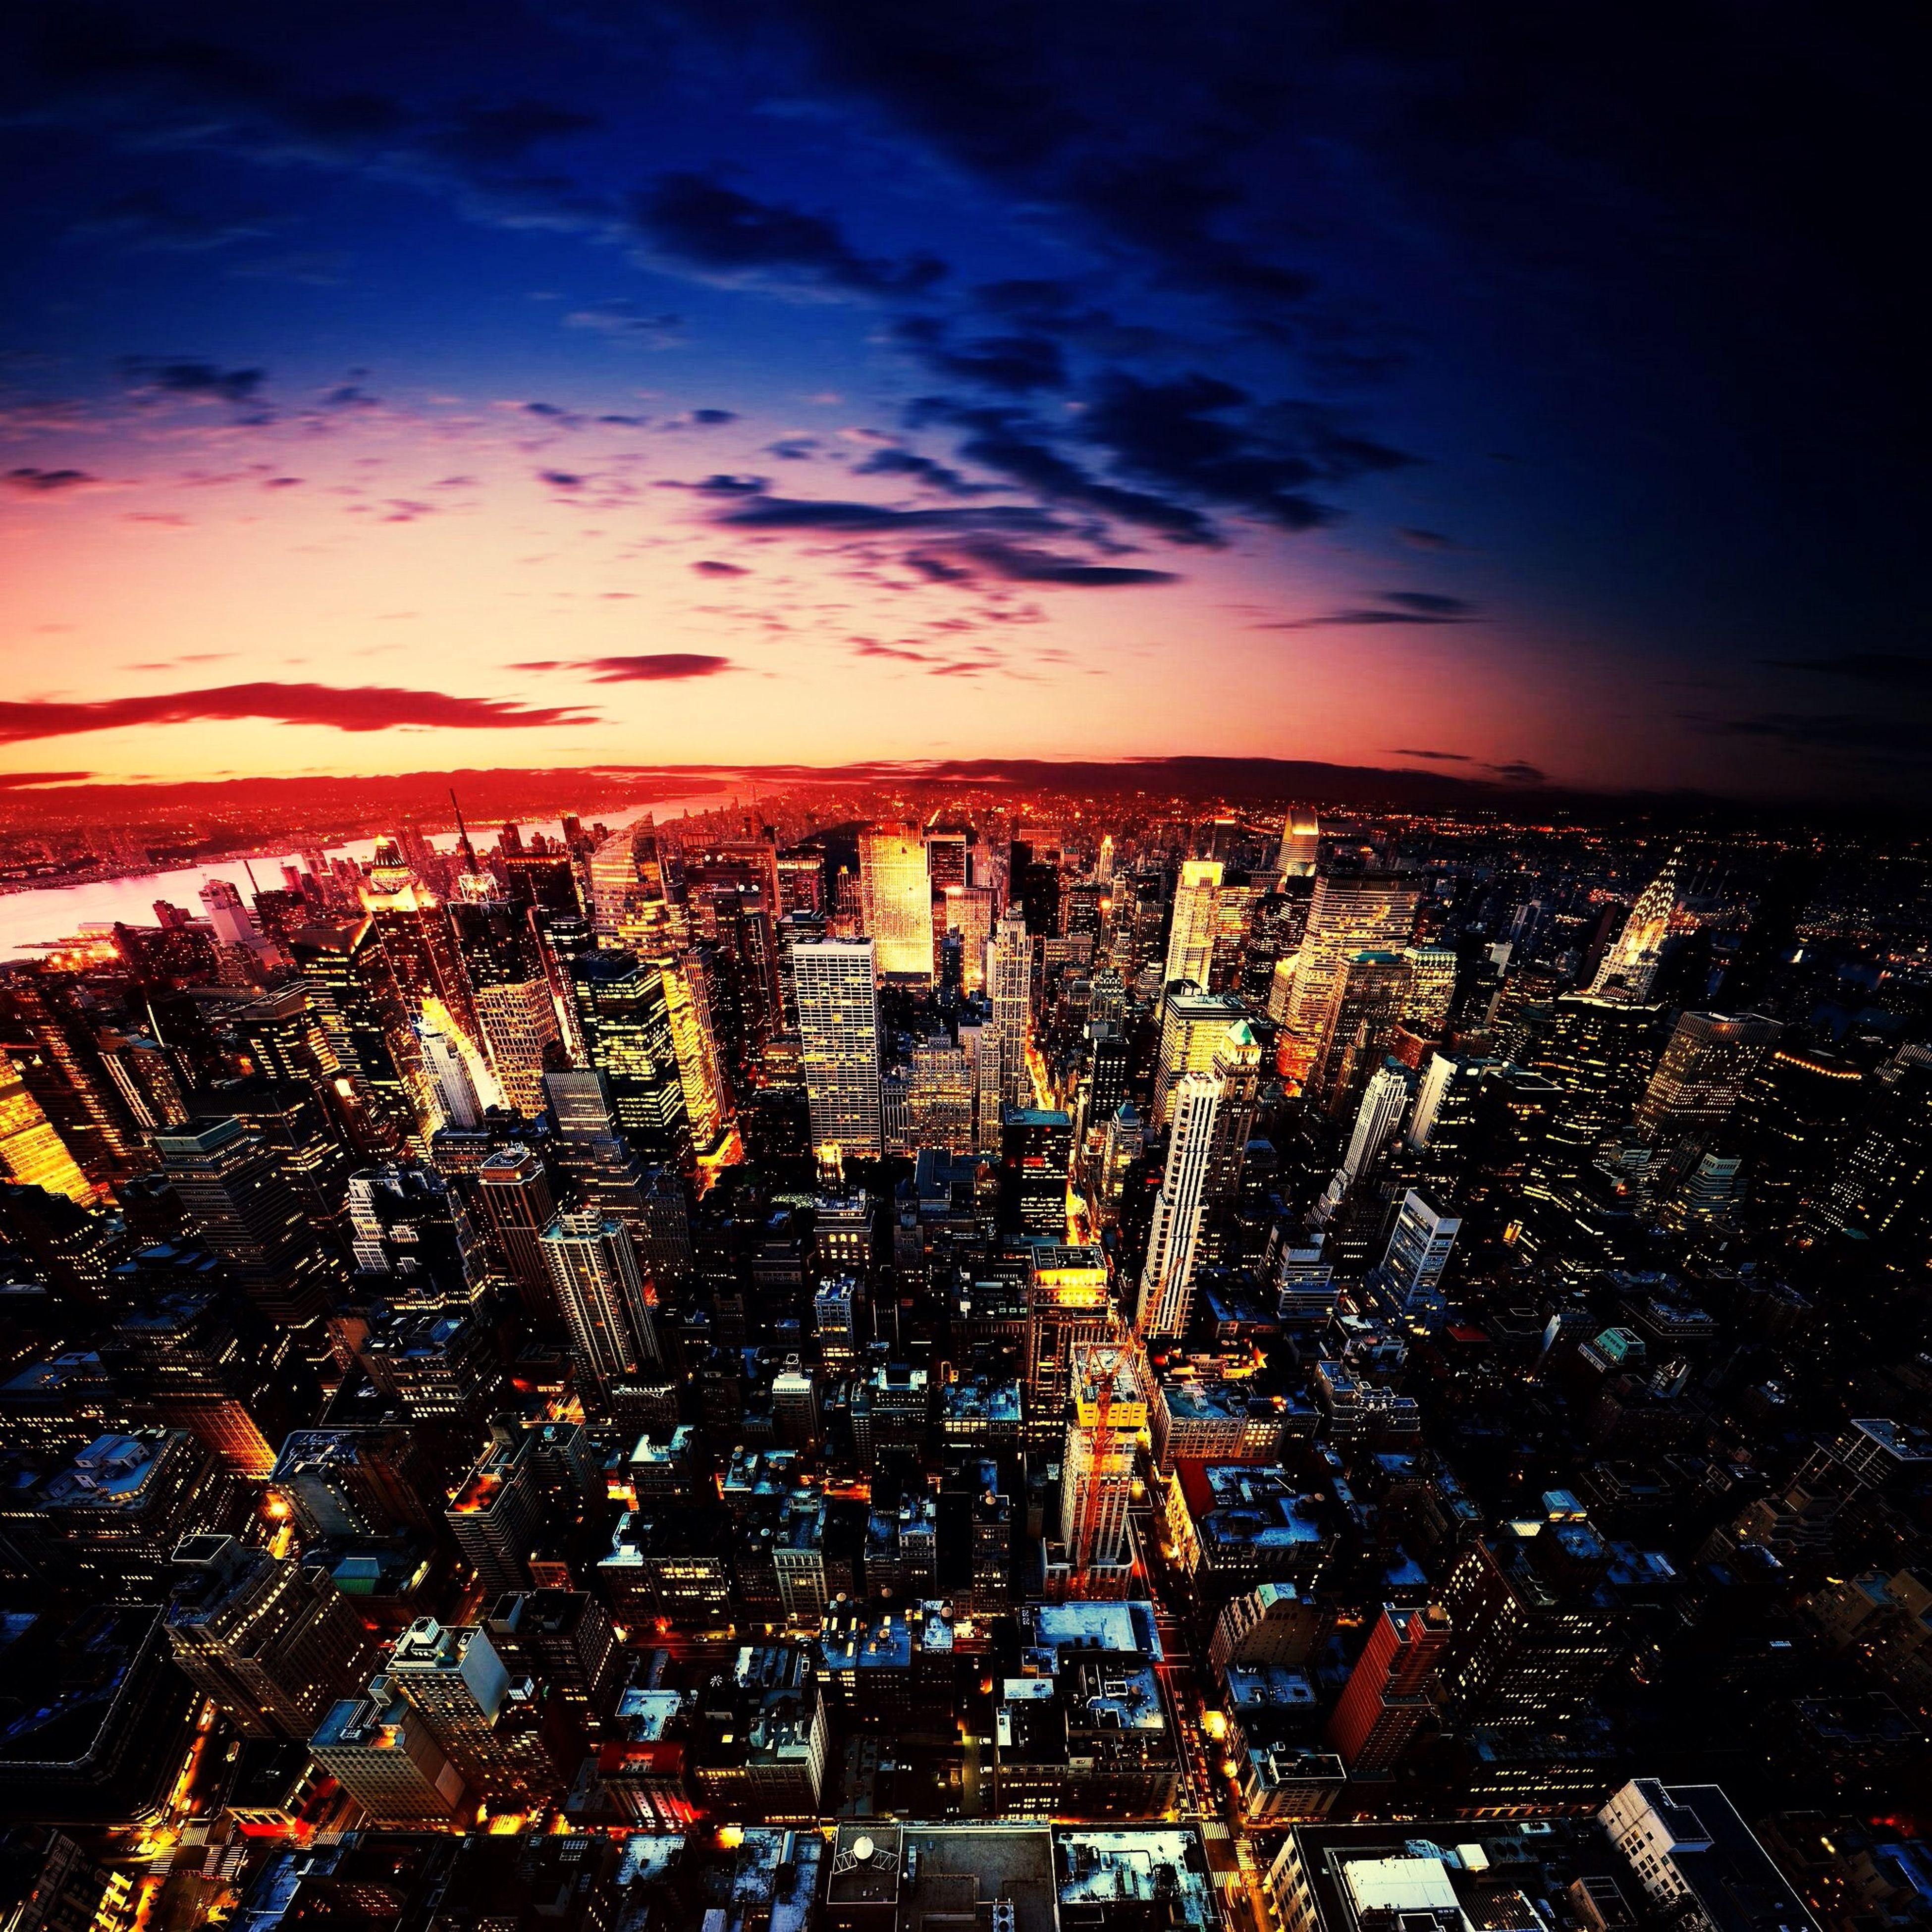 building exterior, city, architecture, cityscape, illuminated, built structure, sky, night, crowded, skyscraper, residential district, cloud - sky, residential building, residential structure, city life, modern, outdoors, tall - high, dusk, no people